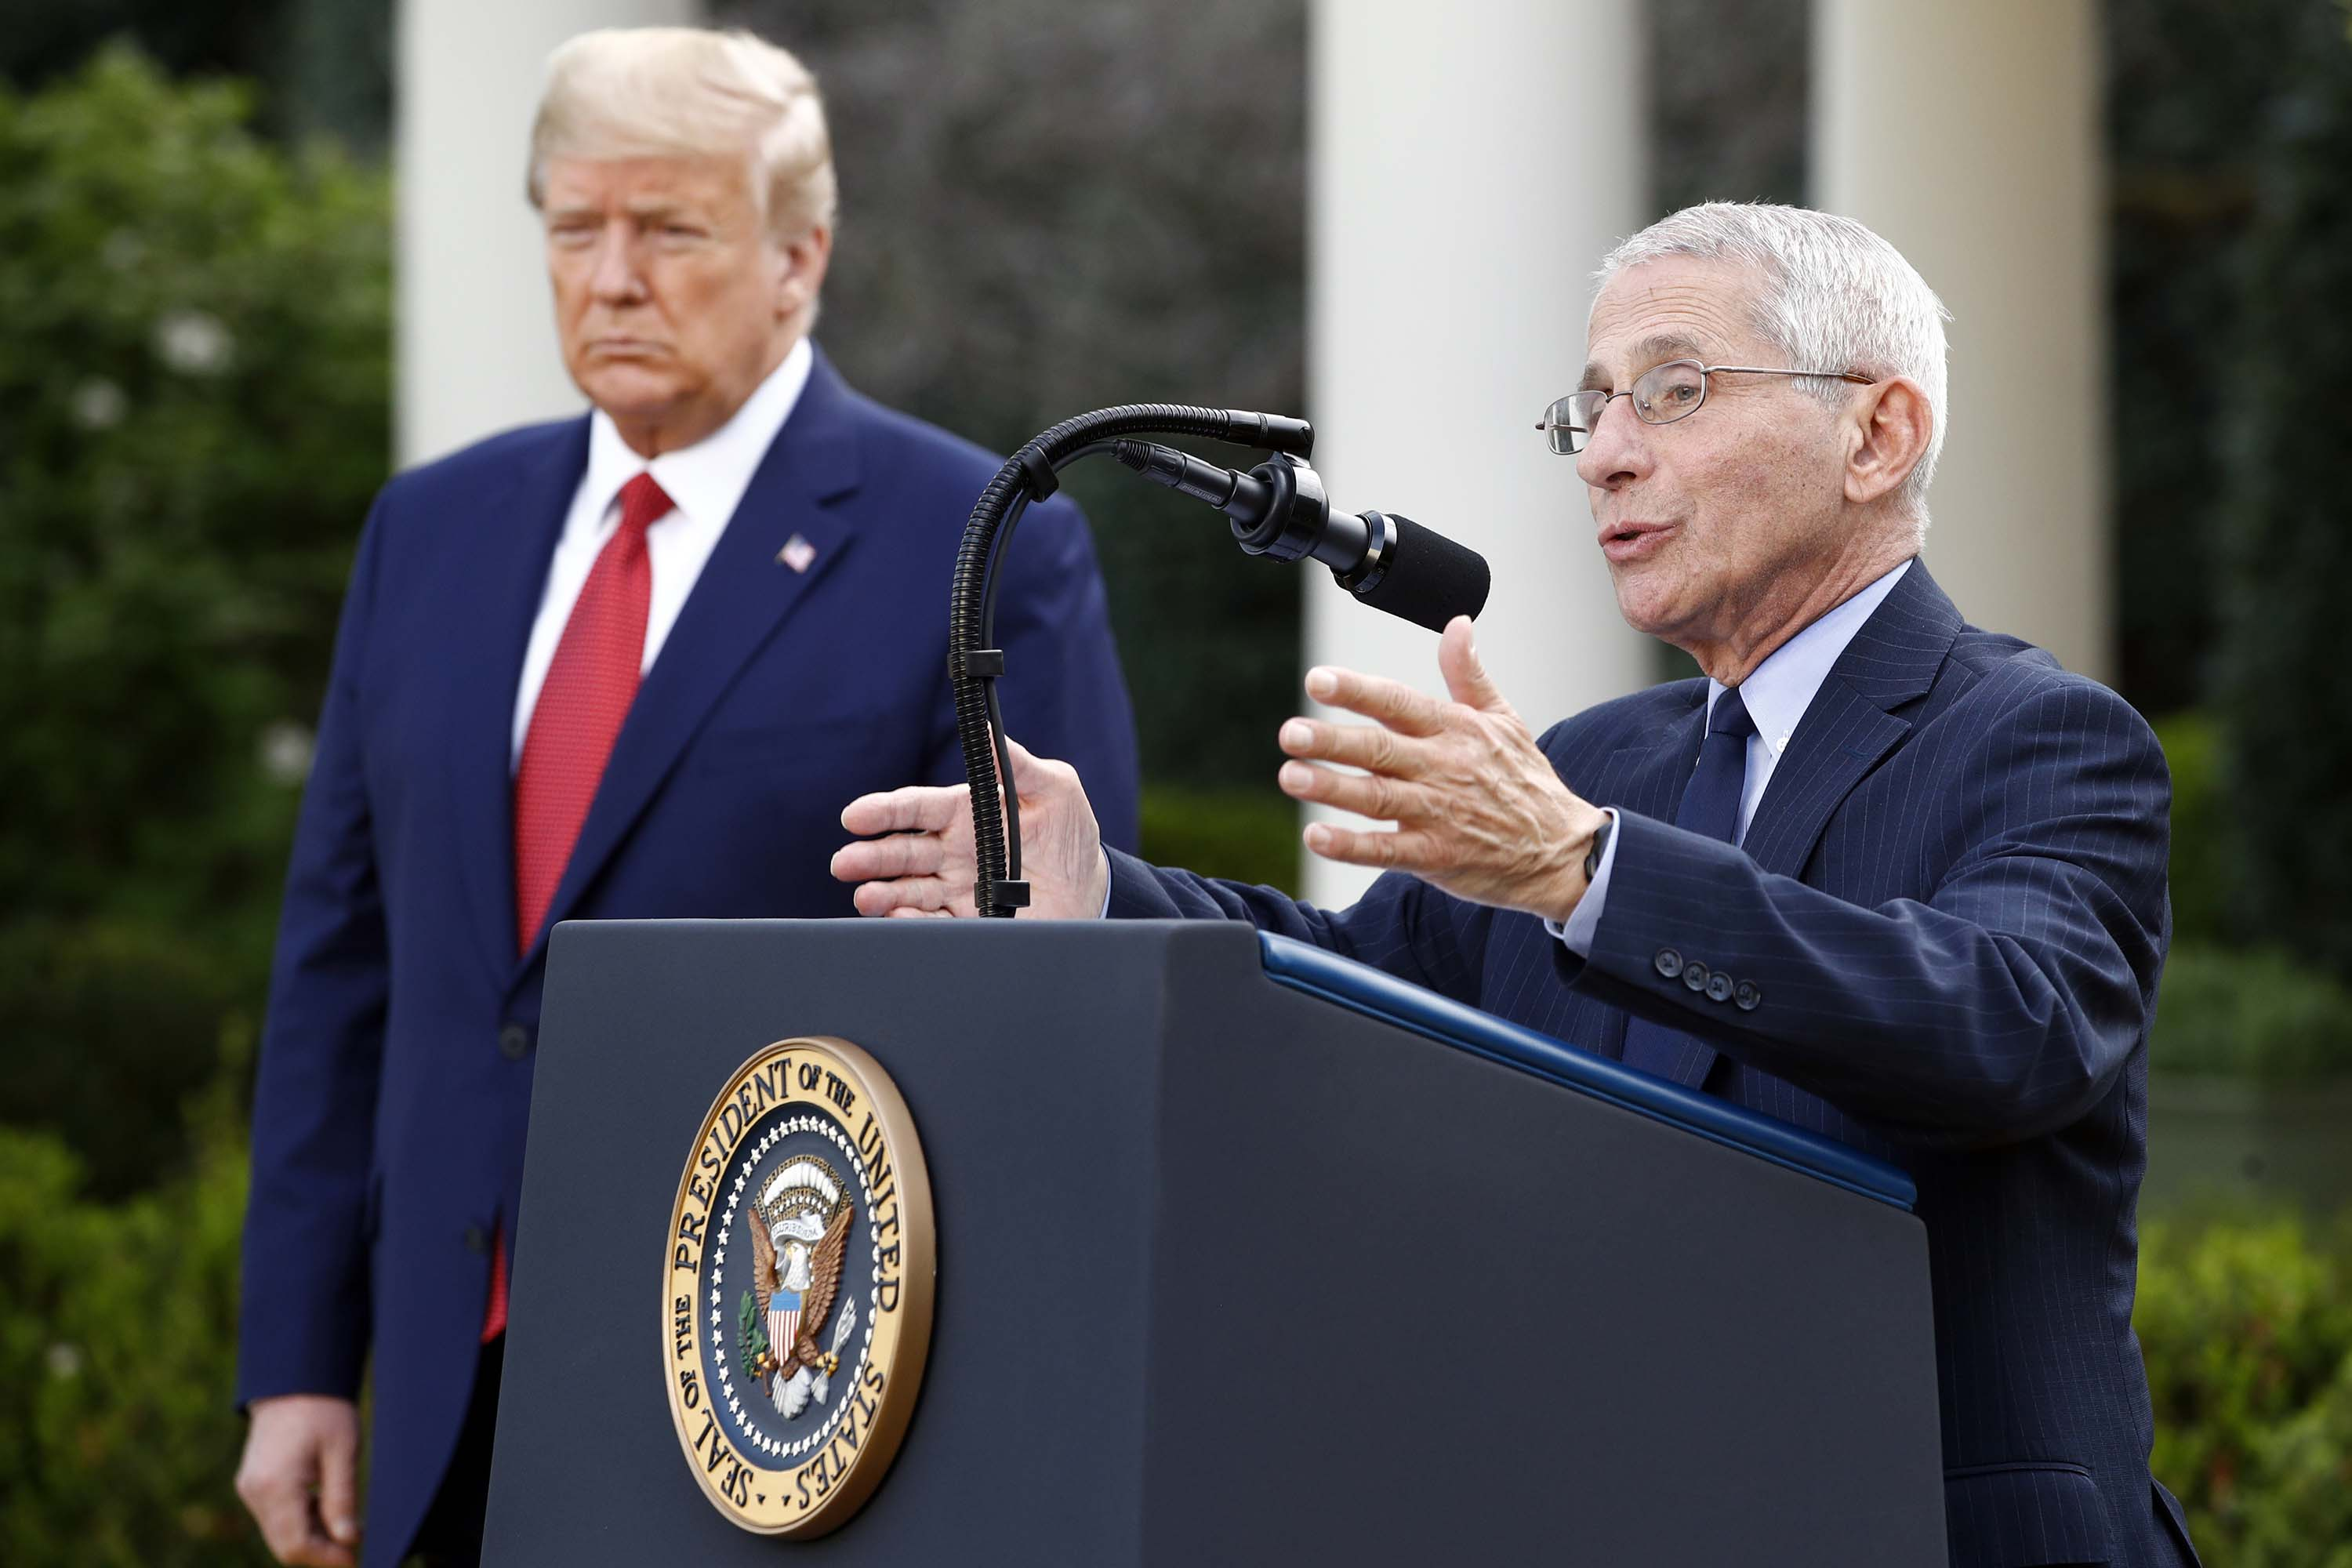 President Donald Trump listens as Dr. Anthony Fauci, director of the National Institute of Allergy and Infectious Diseases, speaks during a coronavirus task force briefing at the White House on March 29.